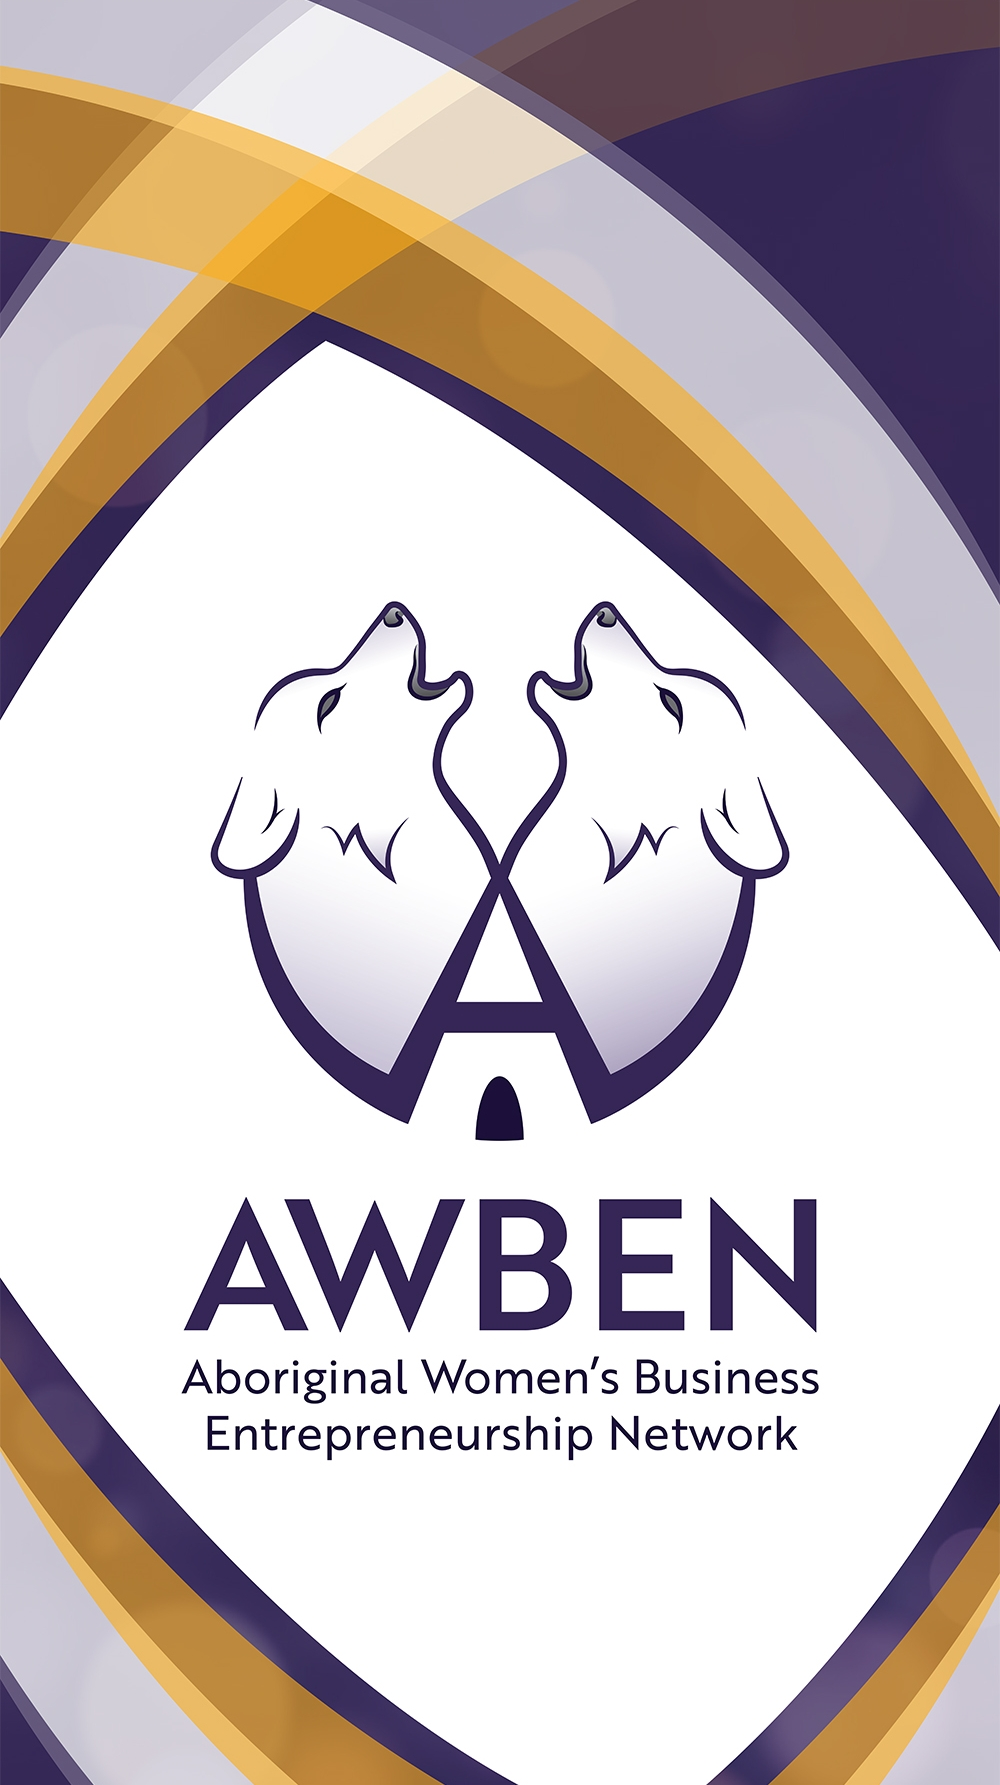 Register for AWBEN 2019 - Application to register is now closed. If you have applied, confirming if your application has been retained.